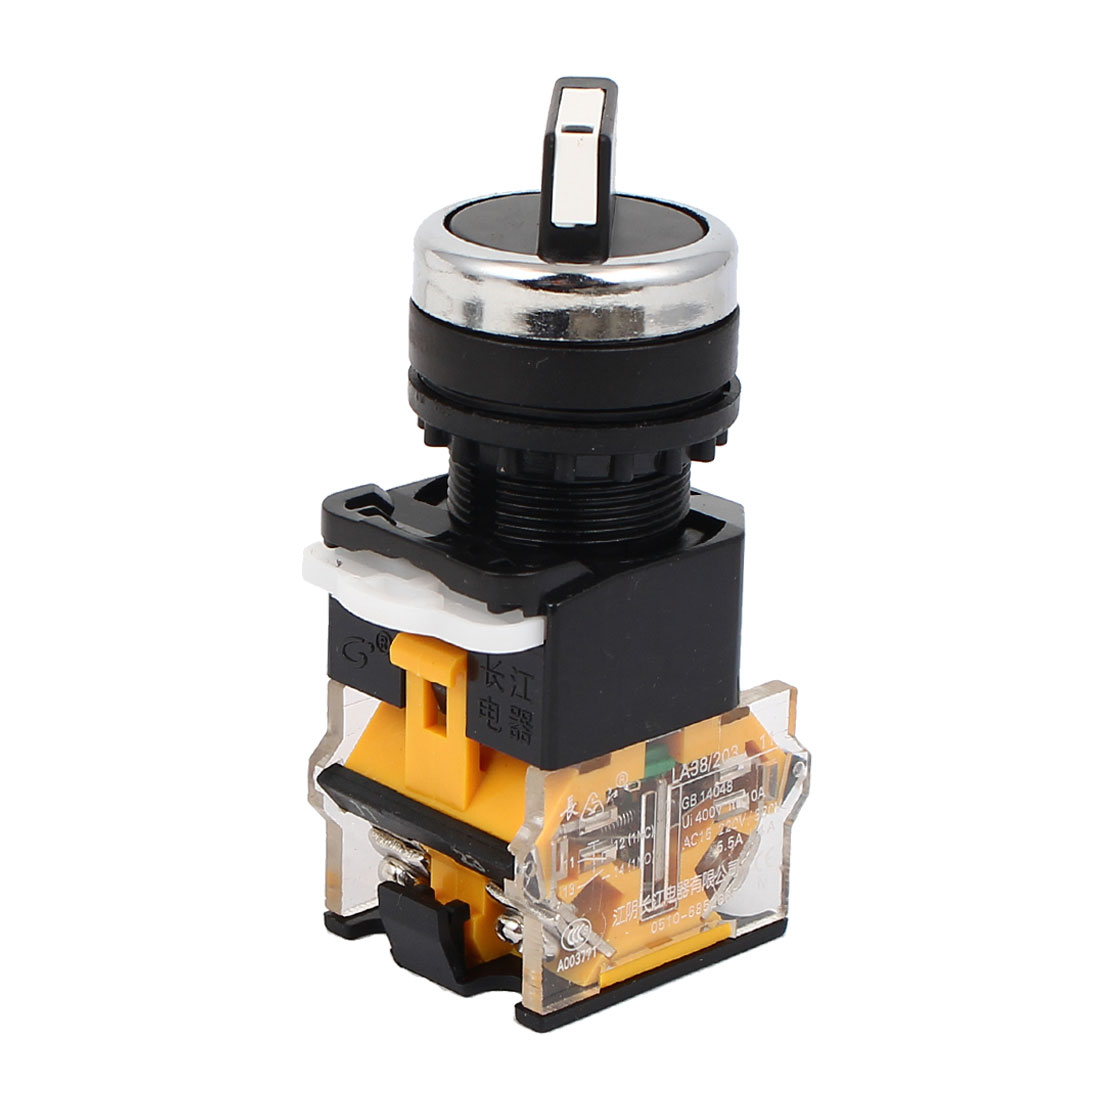 400V 10A DPST Self-locking NO+NC 3 Position Control Rotary Switch